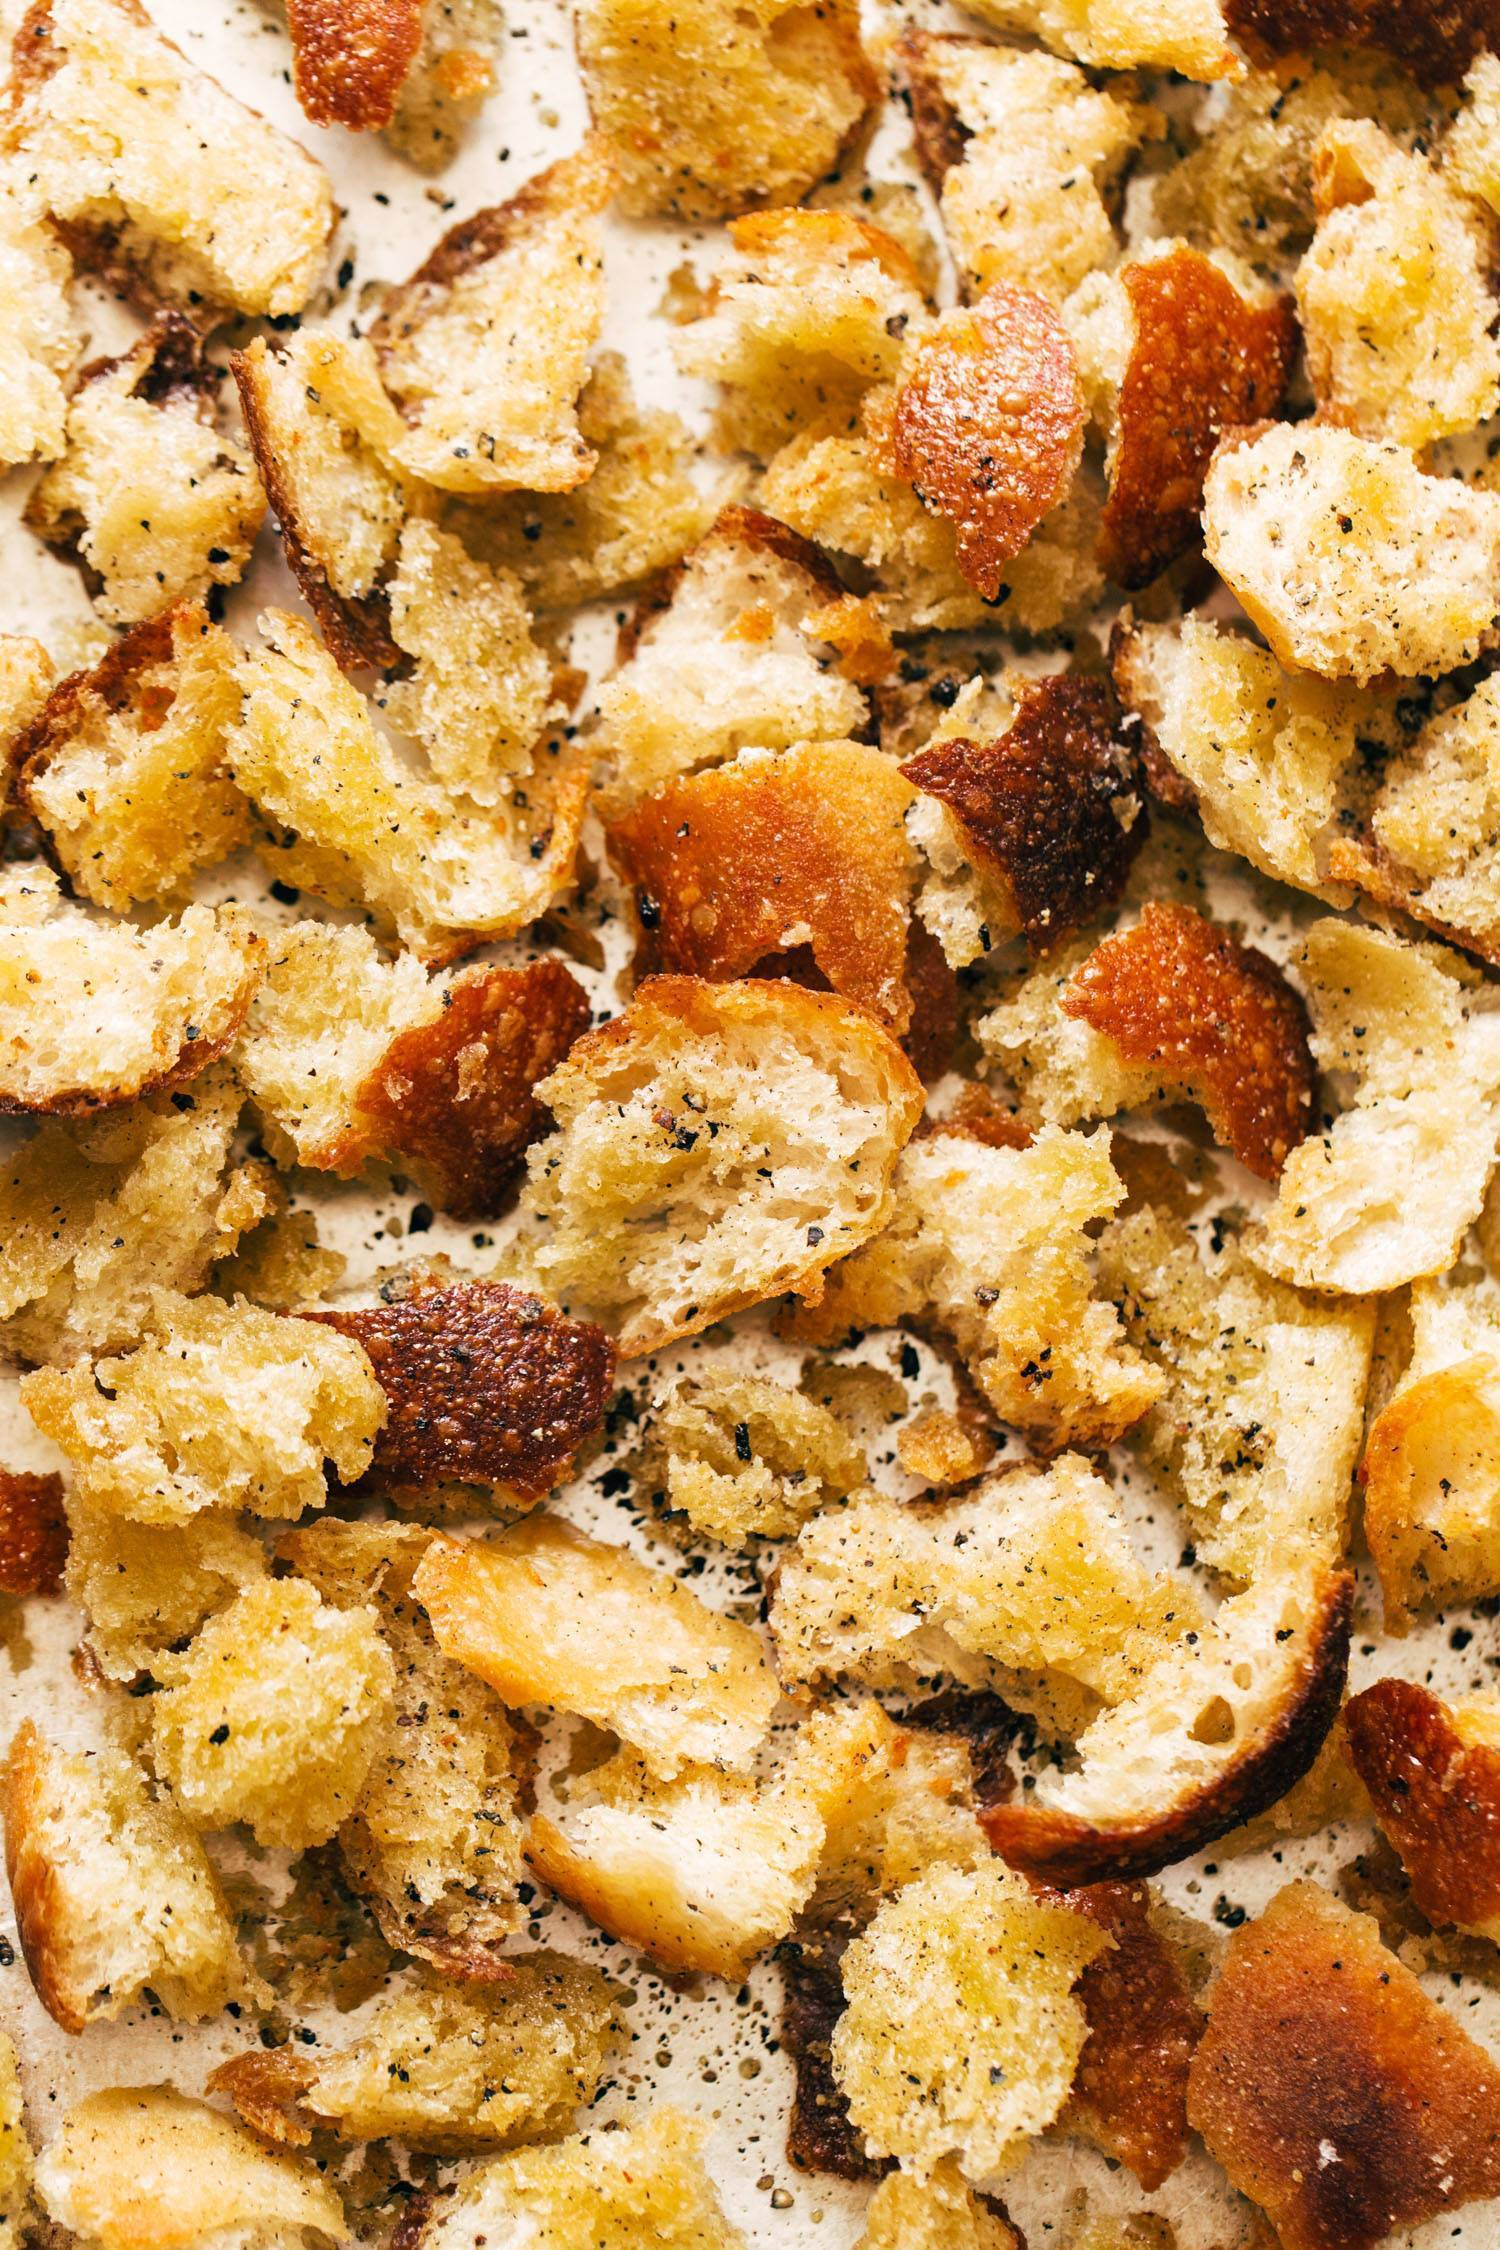 Peppery croutons on a sheet pan with olive oil.